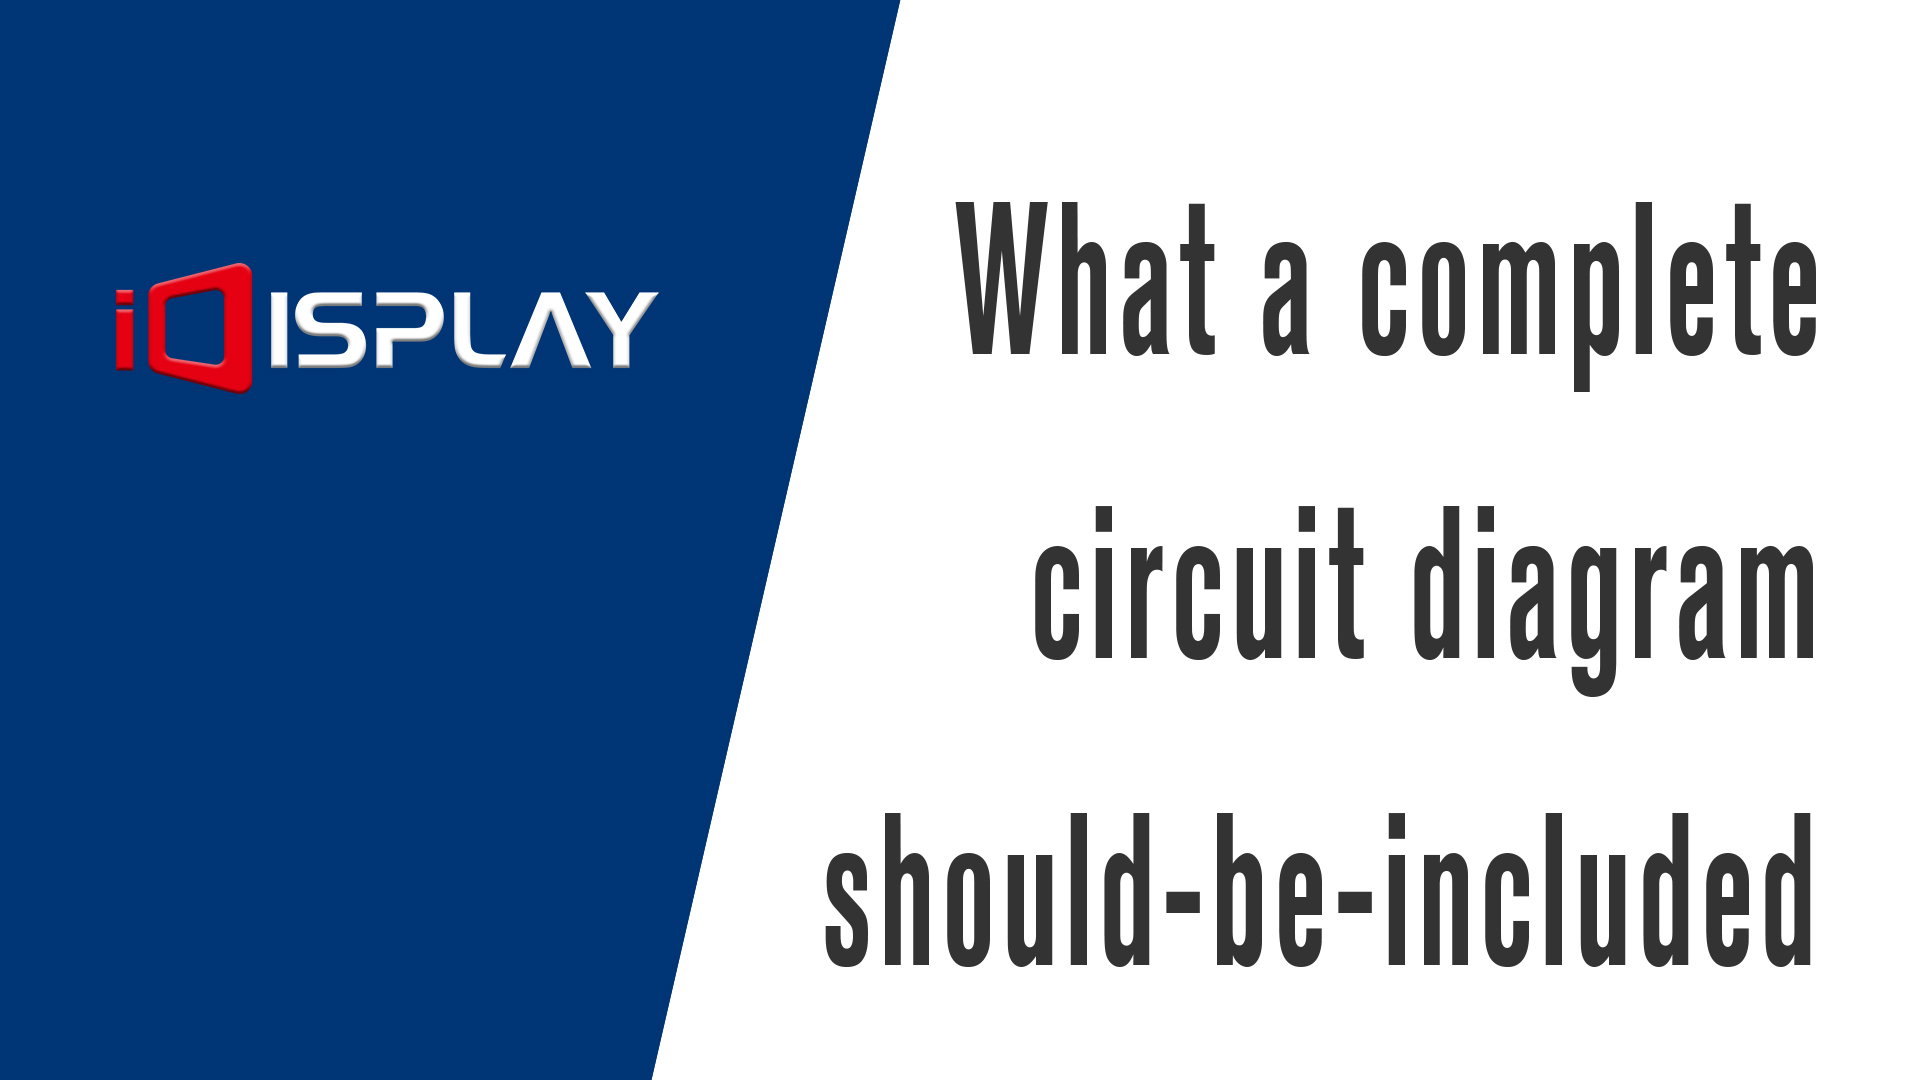 What a complete circuit diagram should be included - shenzhen idisplay technology ltd